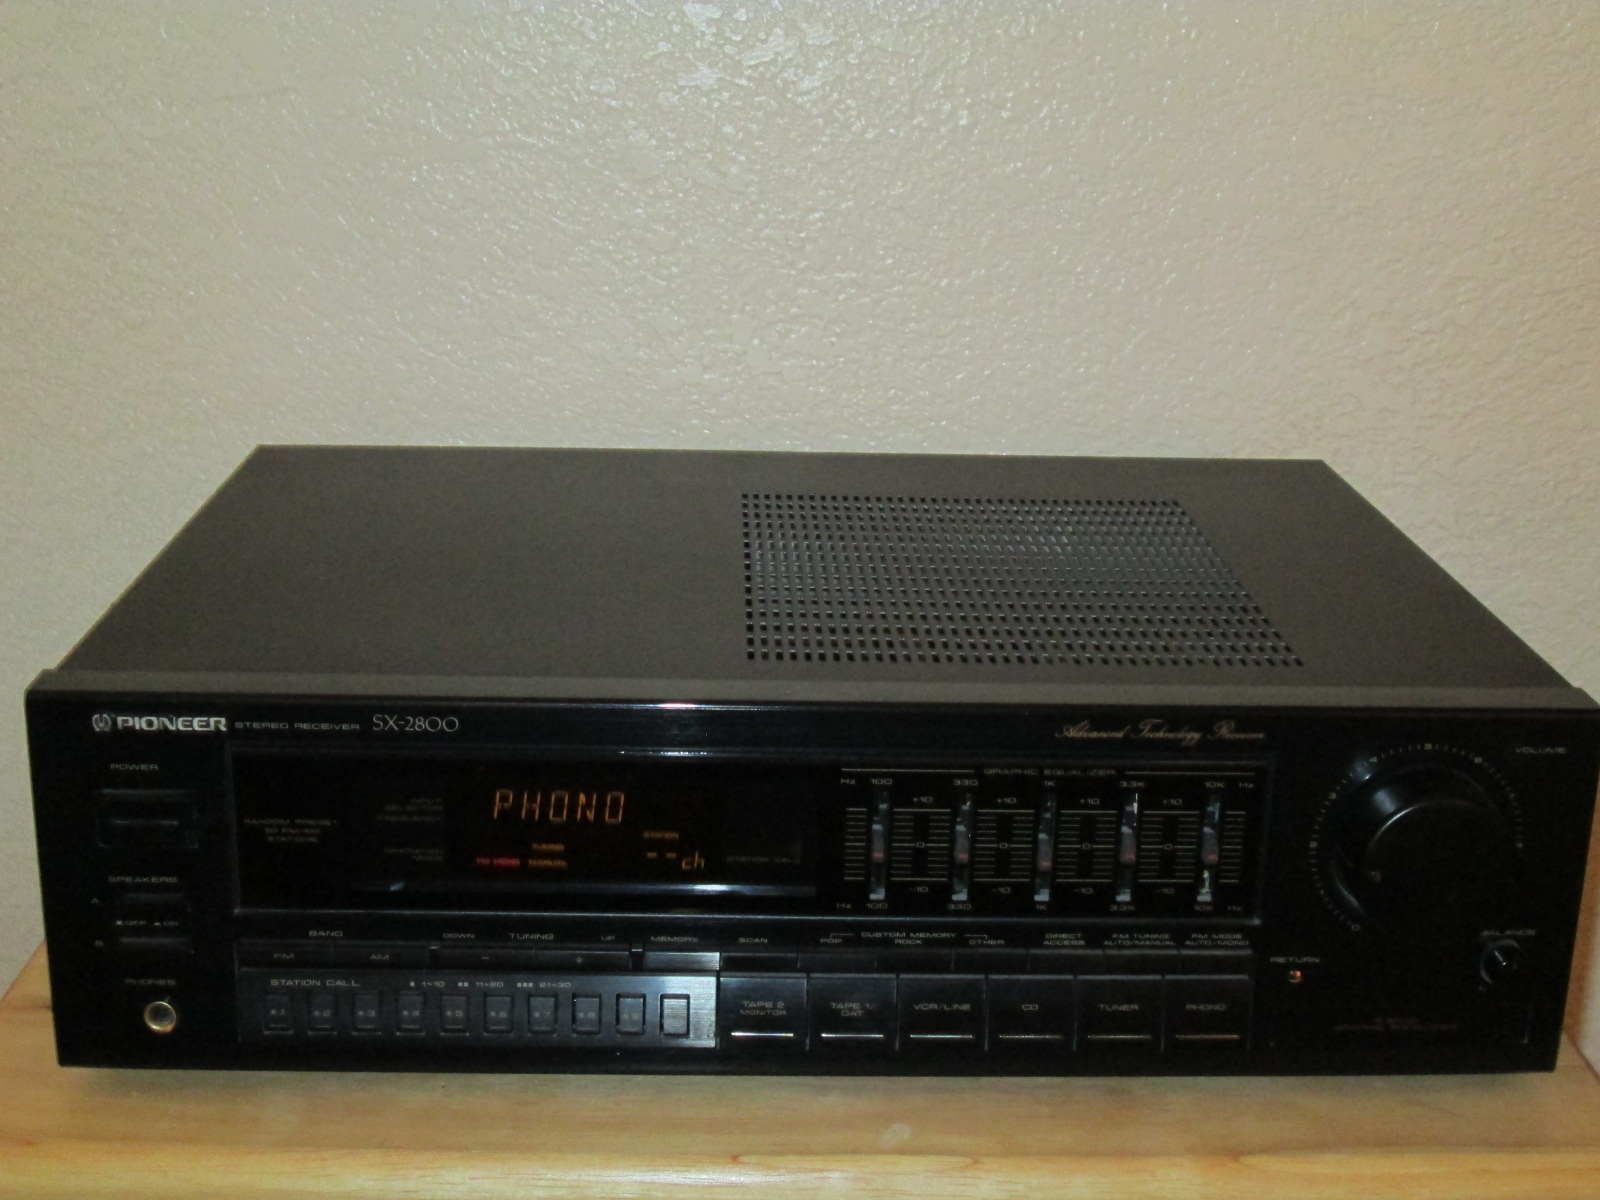 Vintage Pioneer SX-2800 Stereo Receiver